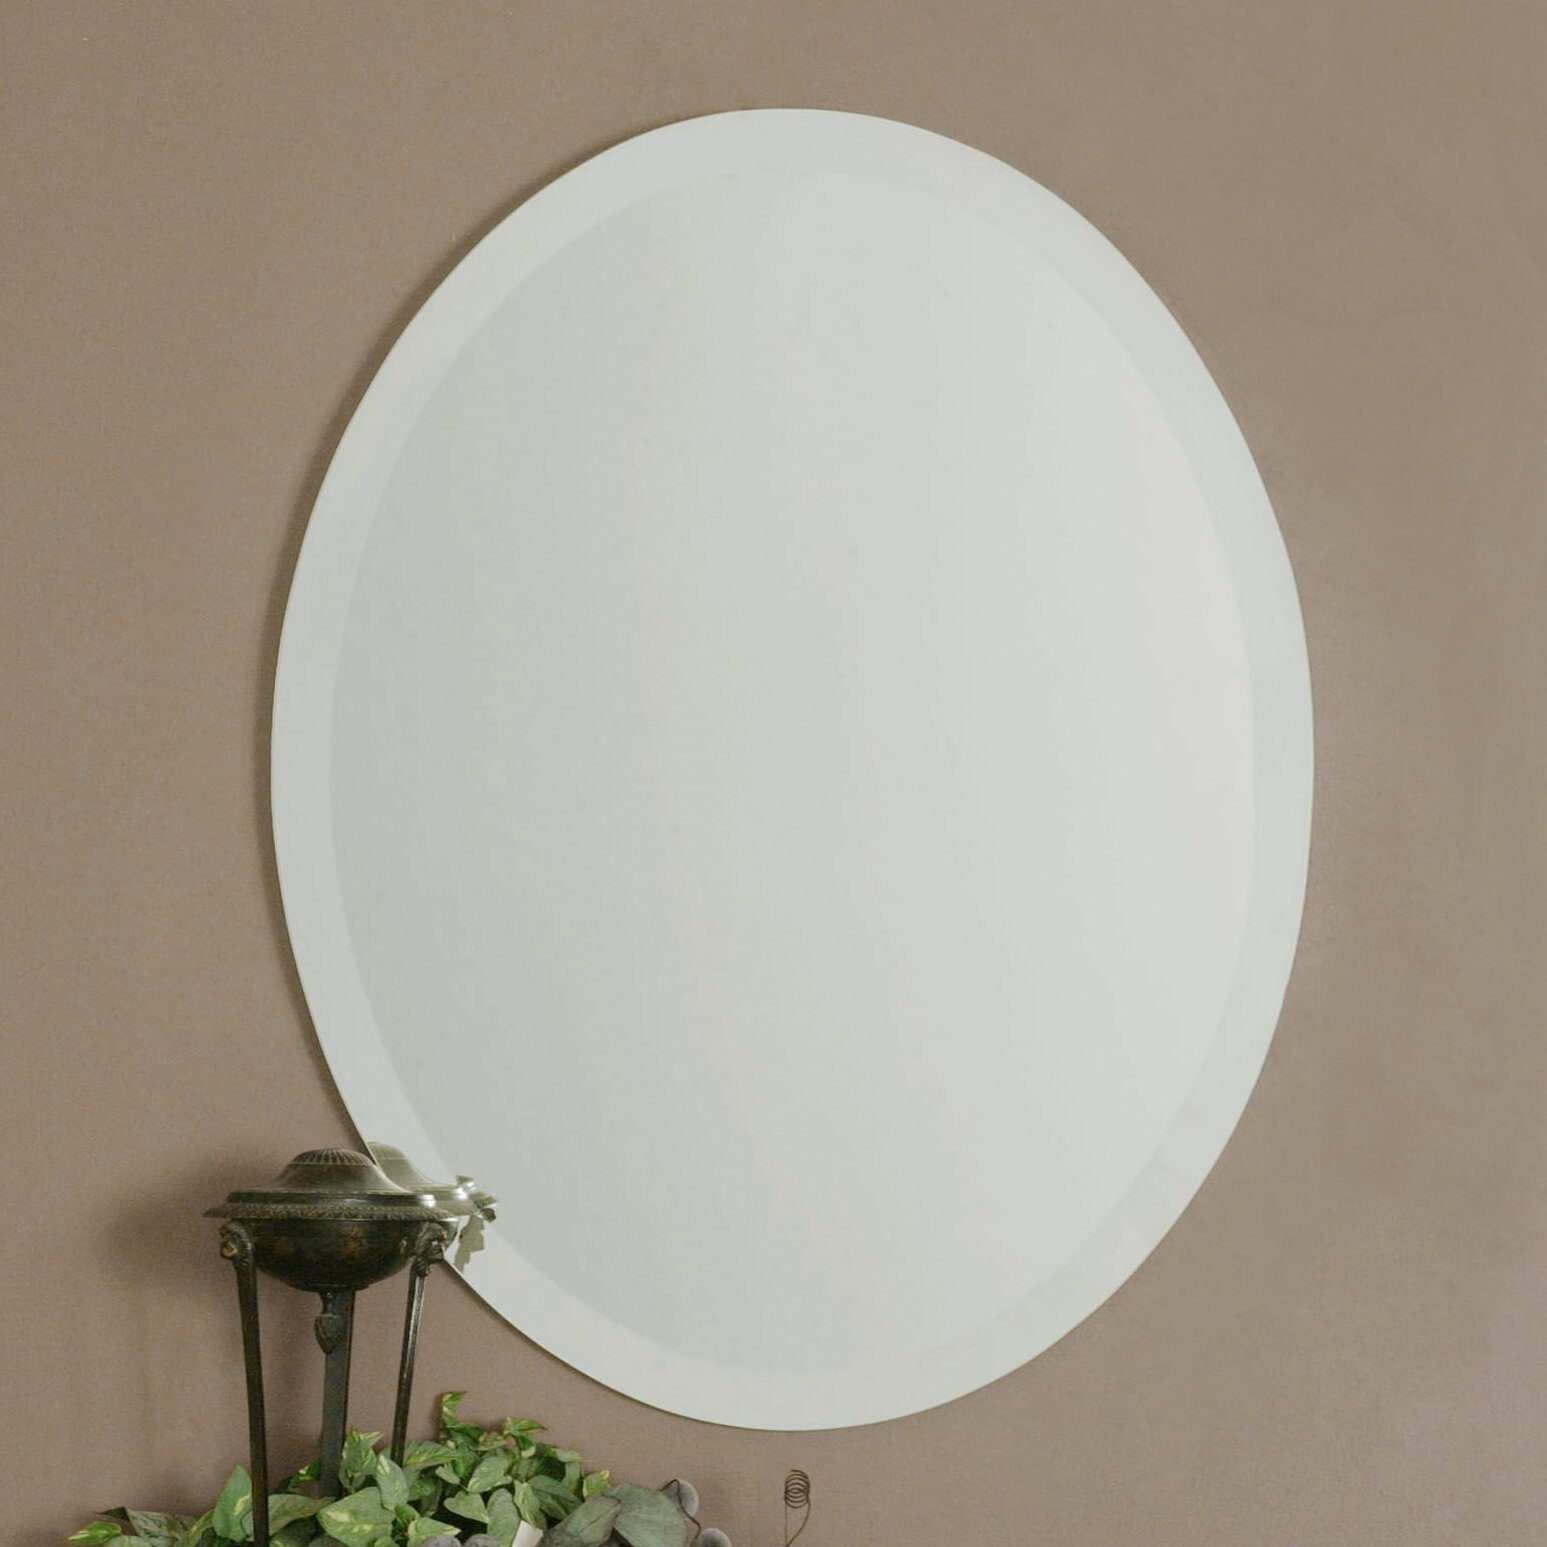 Red barrel studio frameless vanity oval wall mirror for Frameless wall mirror